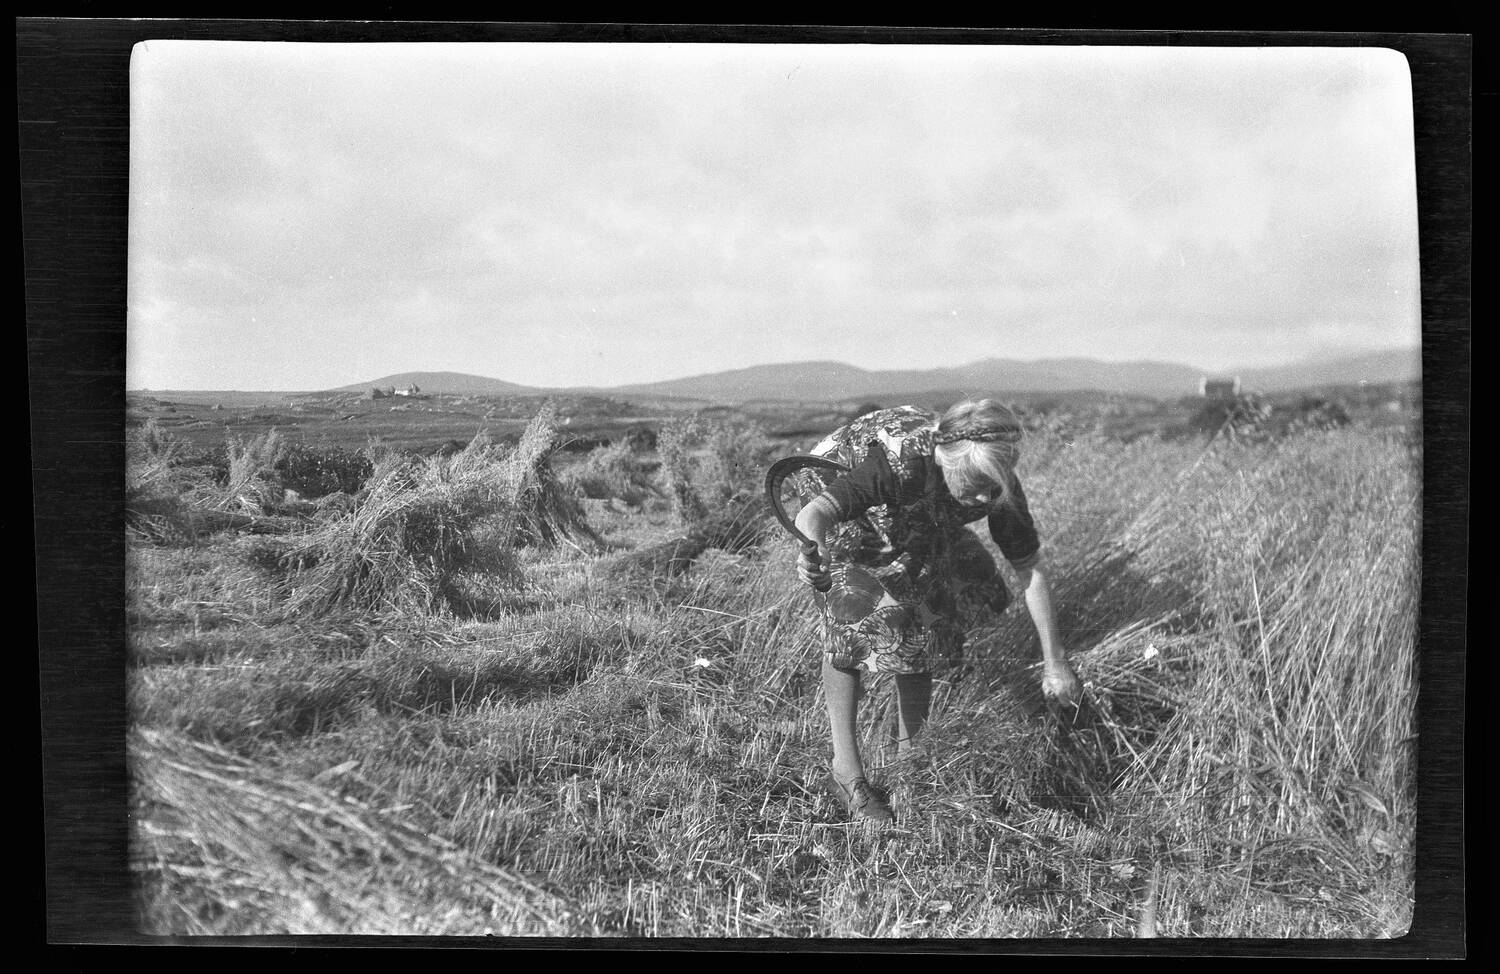 A woman bends over in a grassy field, holding a sickle.